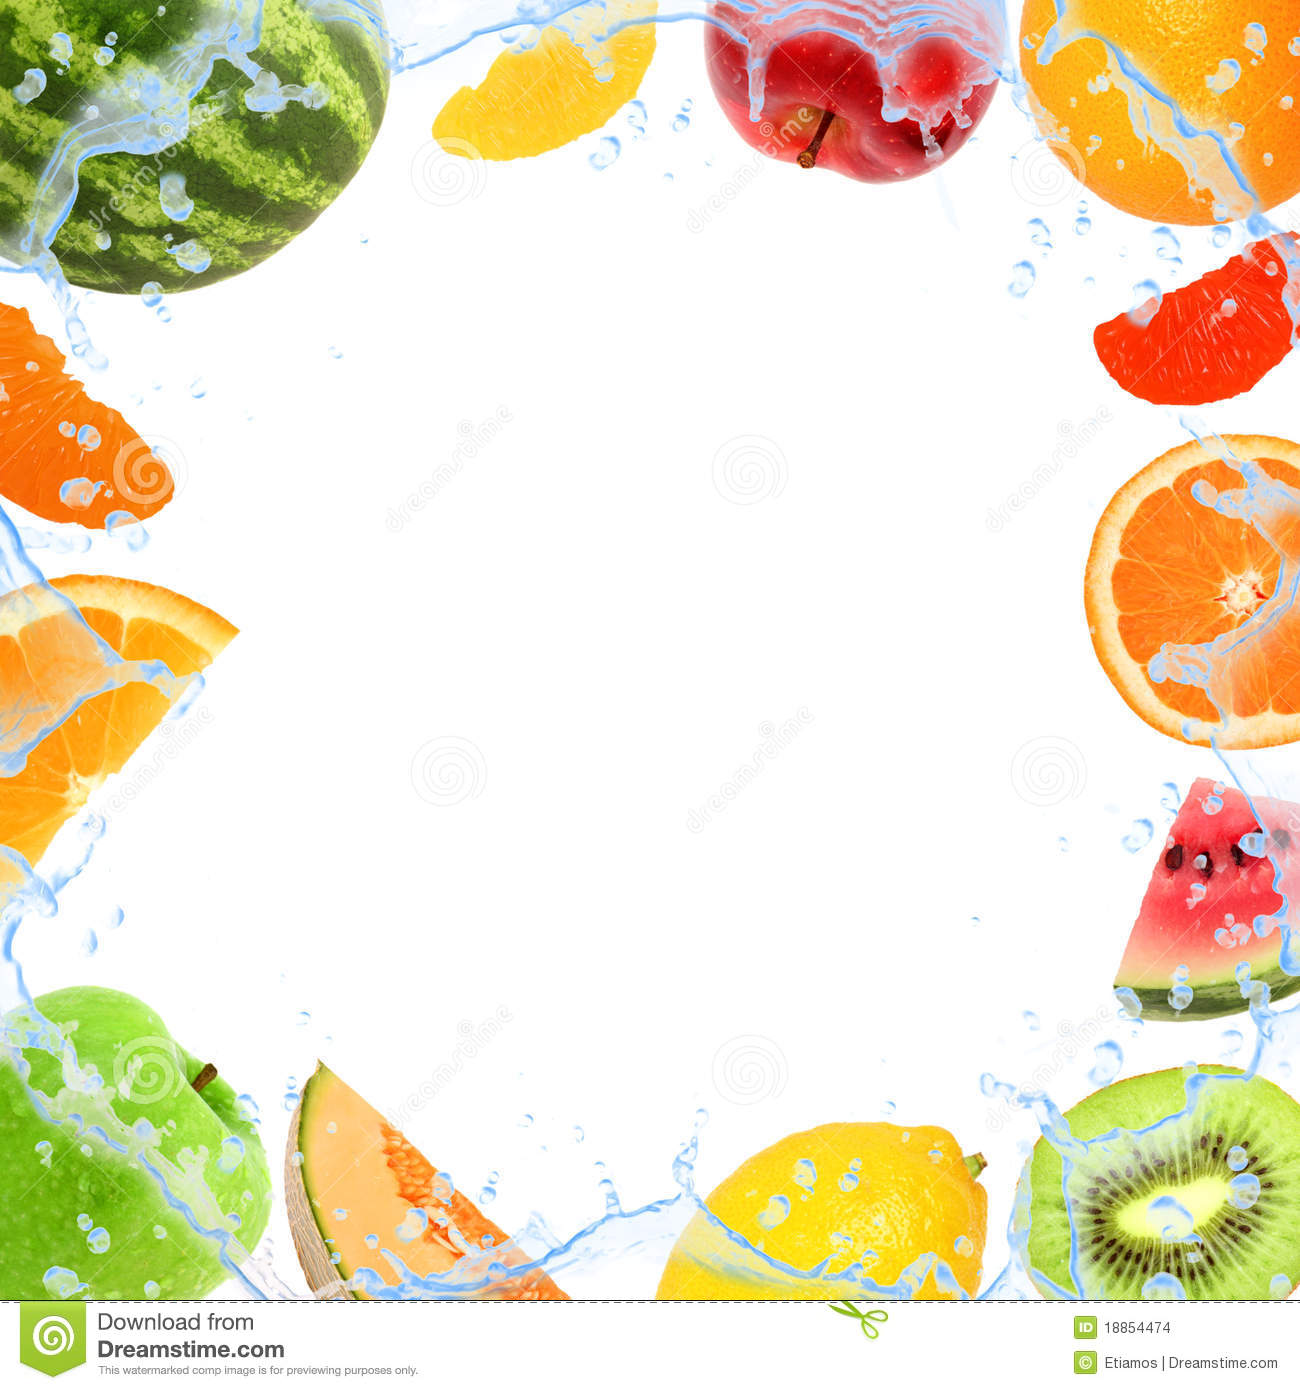 Fruit Background Stock Images - Image: 18854474